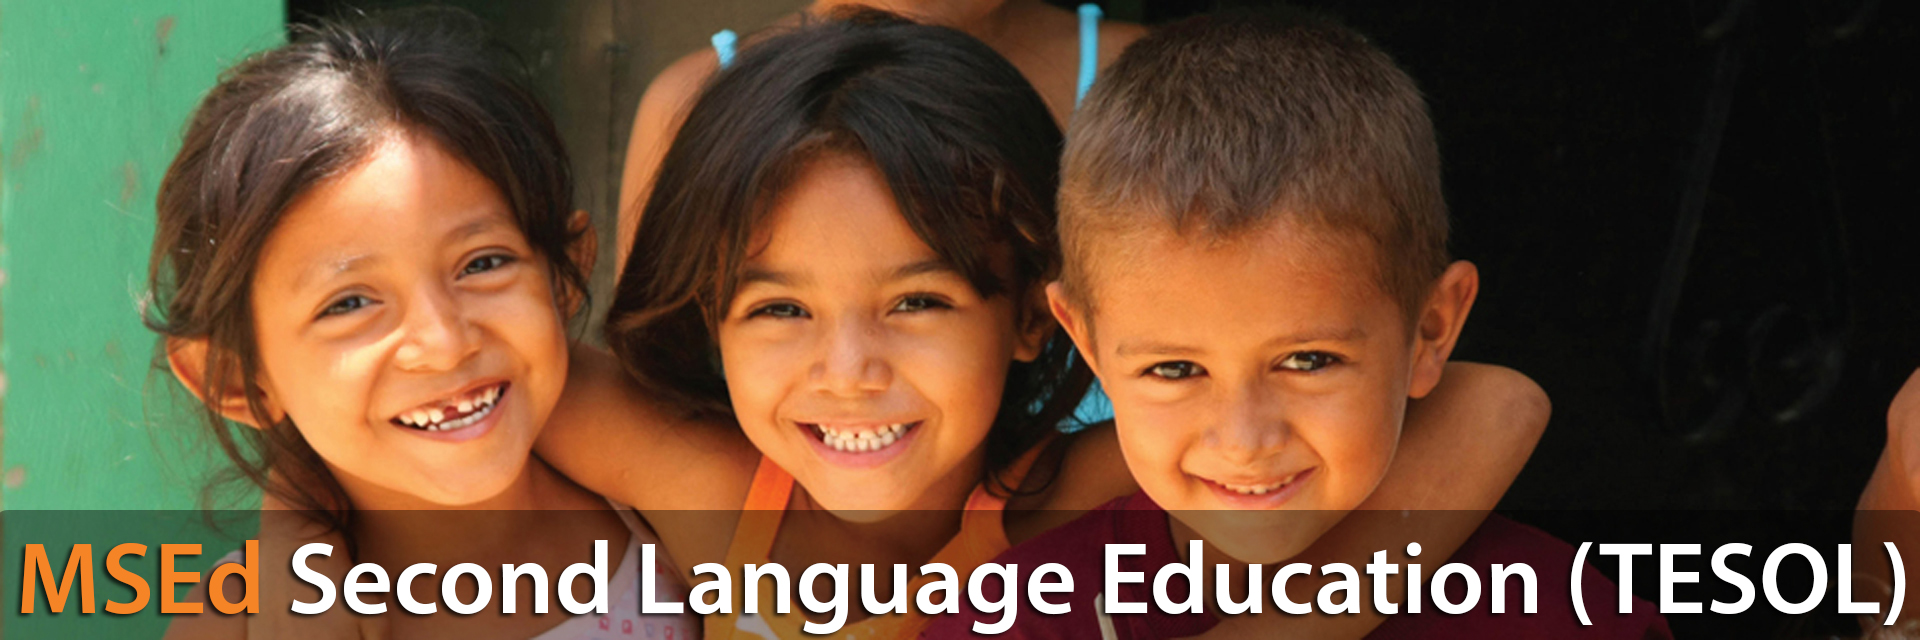 MSEd Second Language Education (TESOL)